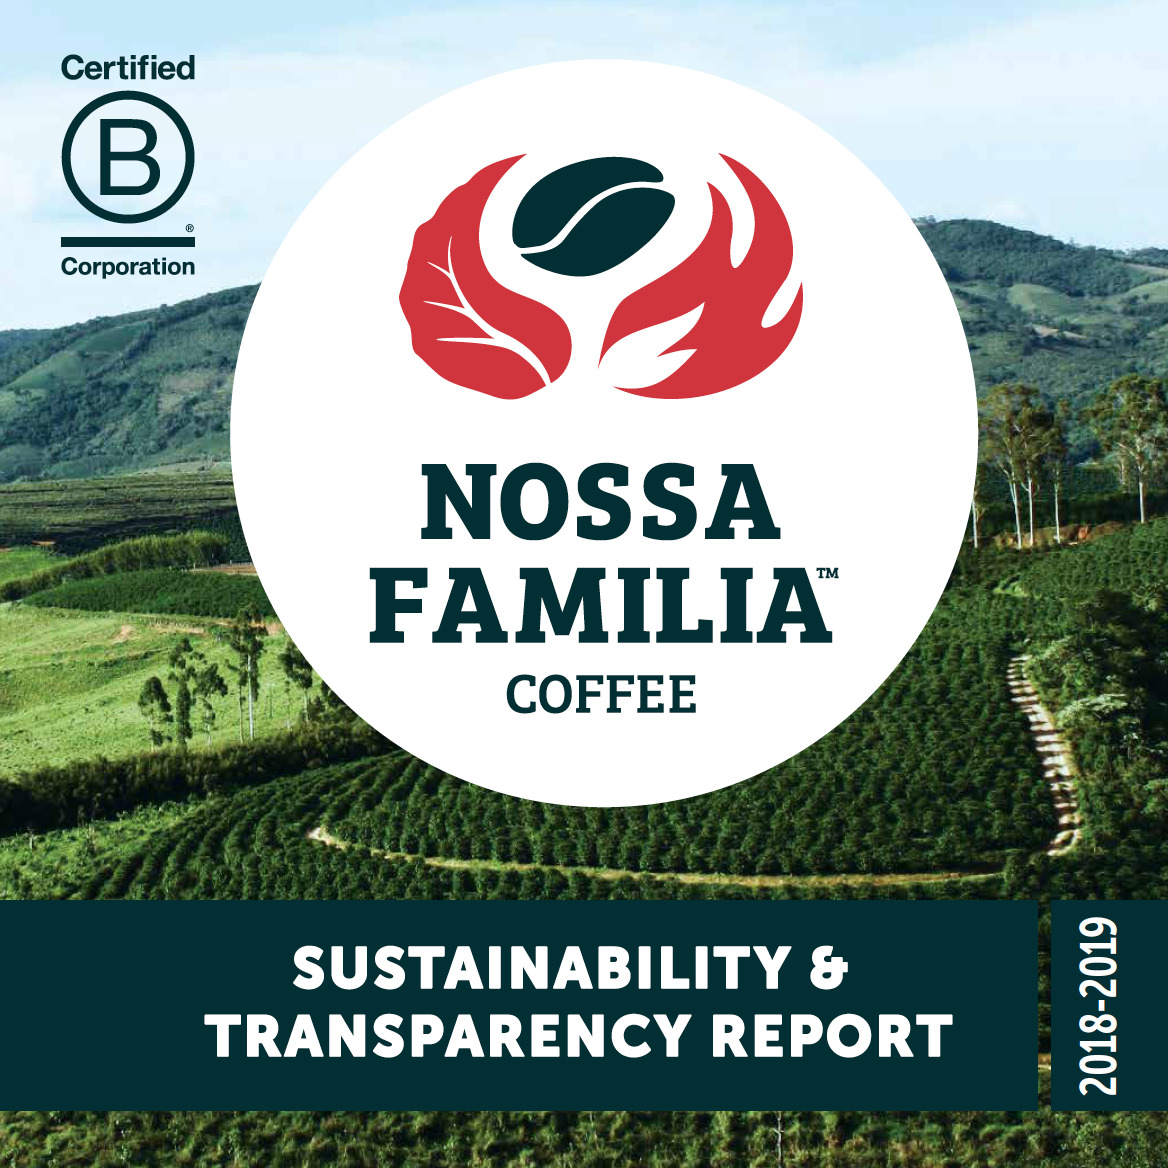 nossa-familia-coffee-sustainability-report-cover.png